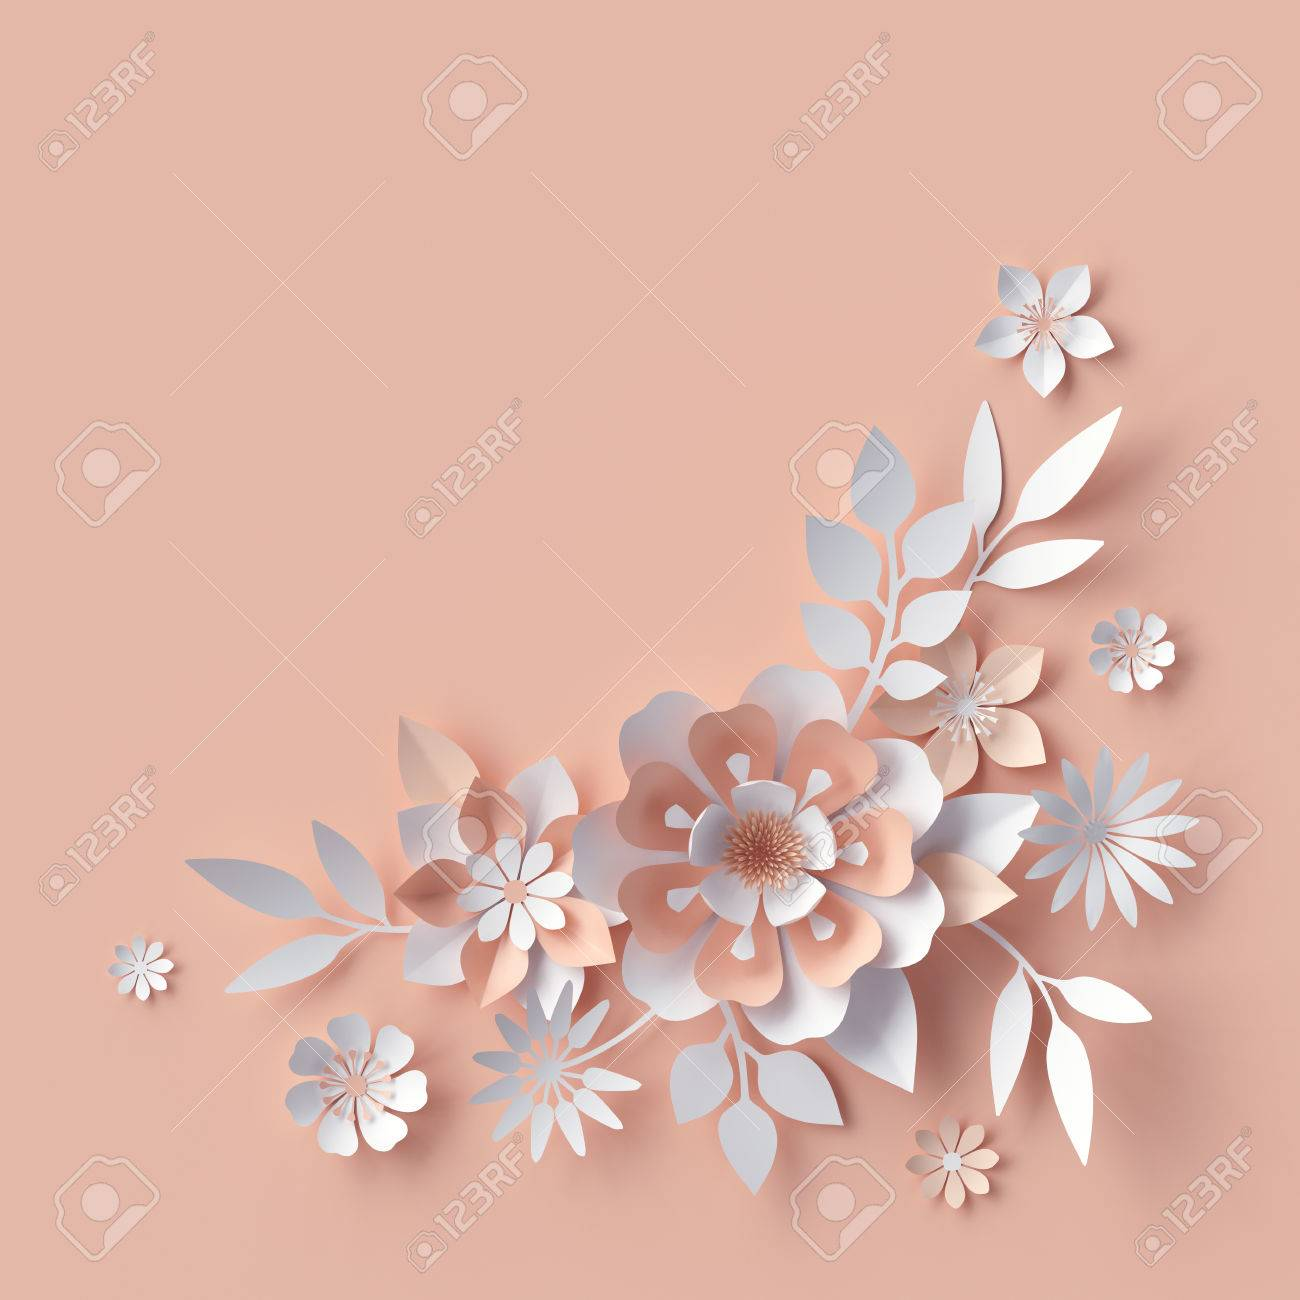 3d Render Abstract Paper Flowers Decorative Floral Background